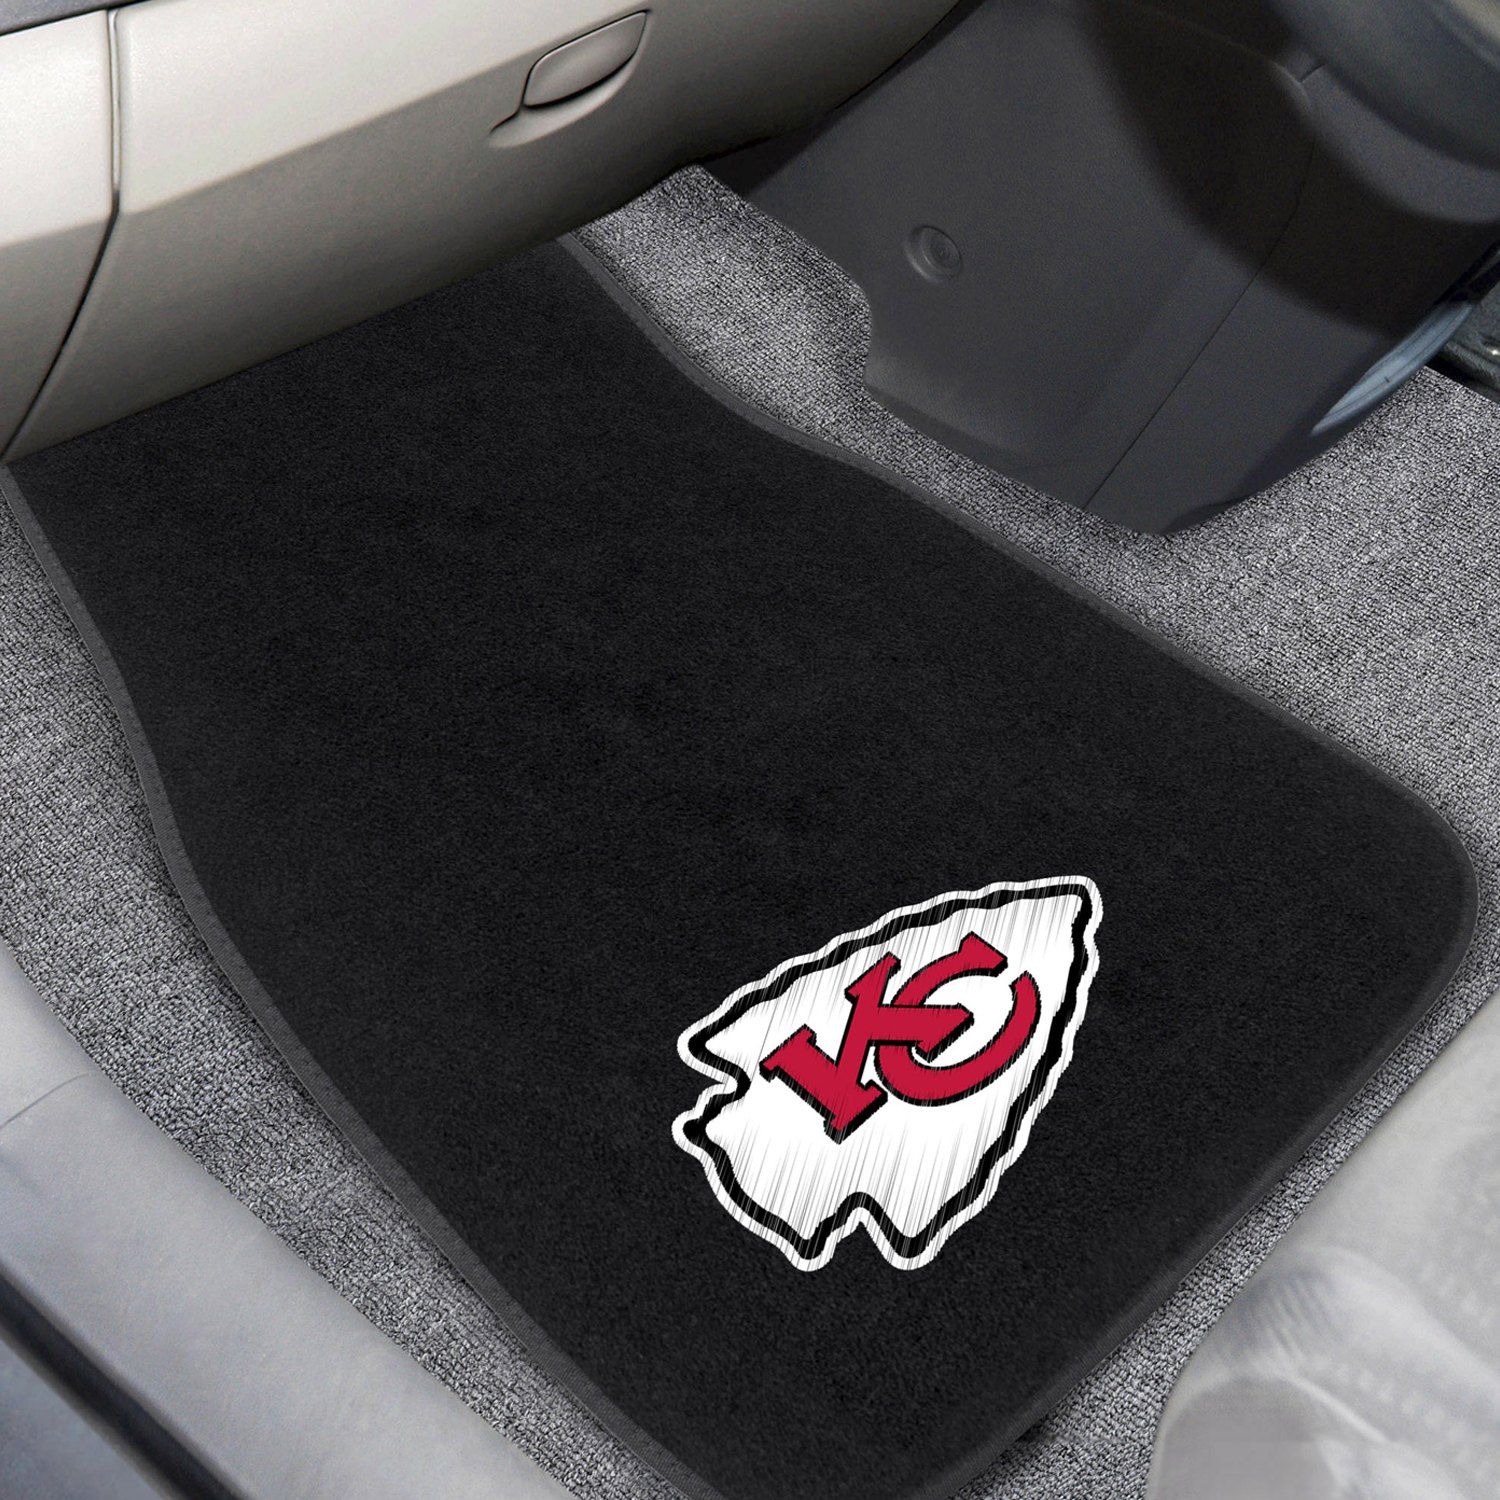 buy cheap FanMats® 20601 - Kansas City Chiefs Logo on Embroidered Floor Mats for 2015 RAM 1500 TRUCK Ebay & Amazon